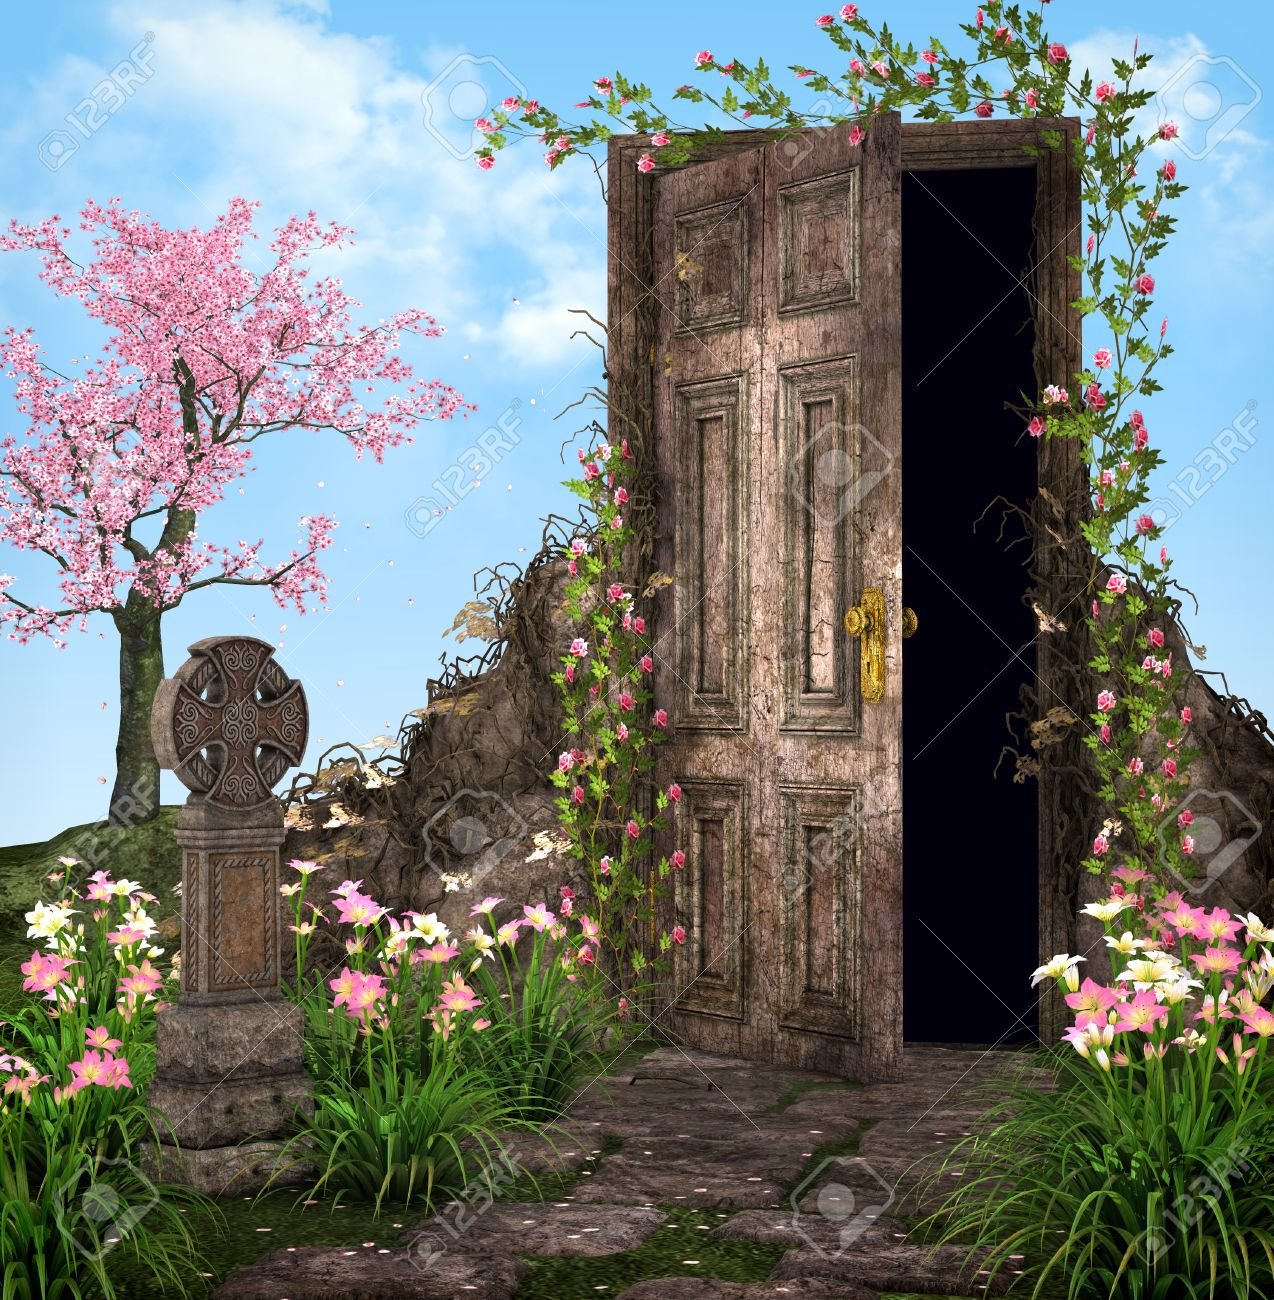 Enchanted garden illustration Stock Illustration - 11367271 & Enchanted Garden Illustration Stock Photo Picture And Royalty Free ...